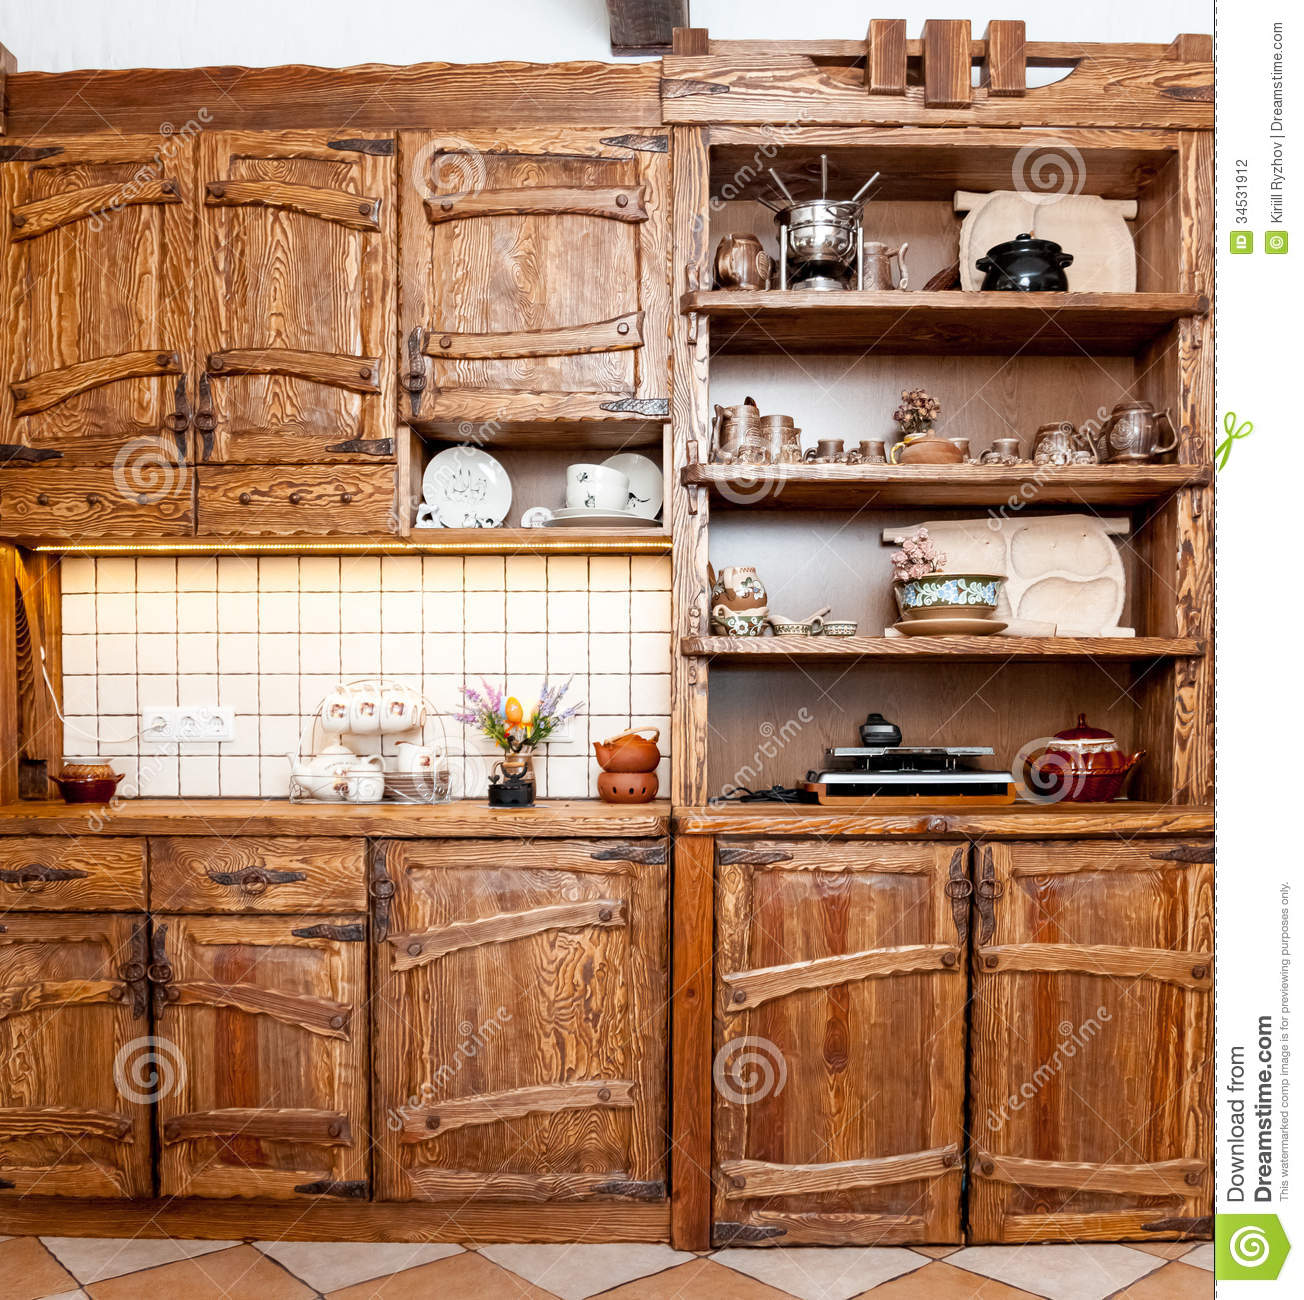 the present property rustic design of ingrid warmth with cupboard most style incredible regard old country furniture wooden to throughout